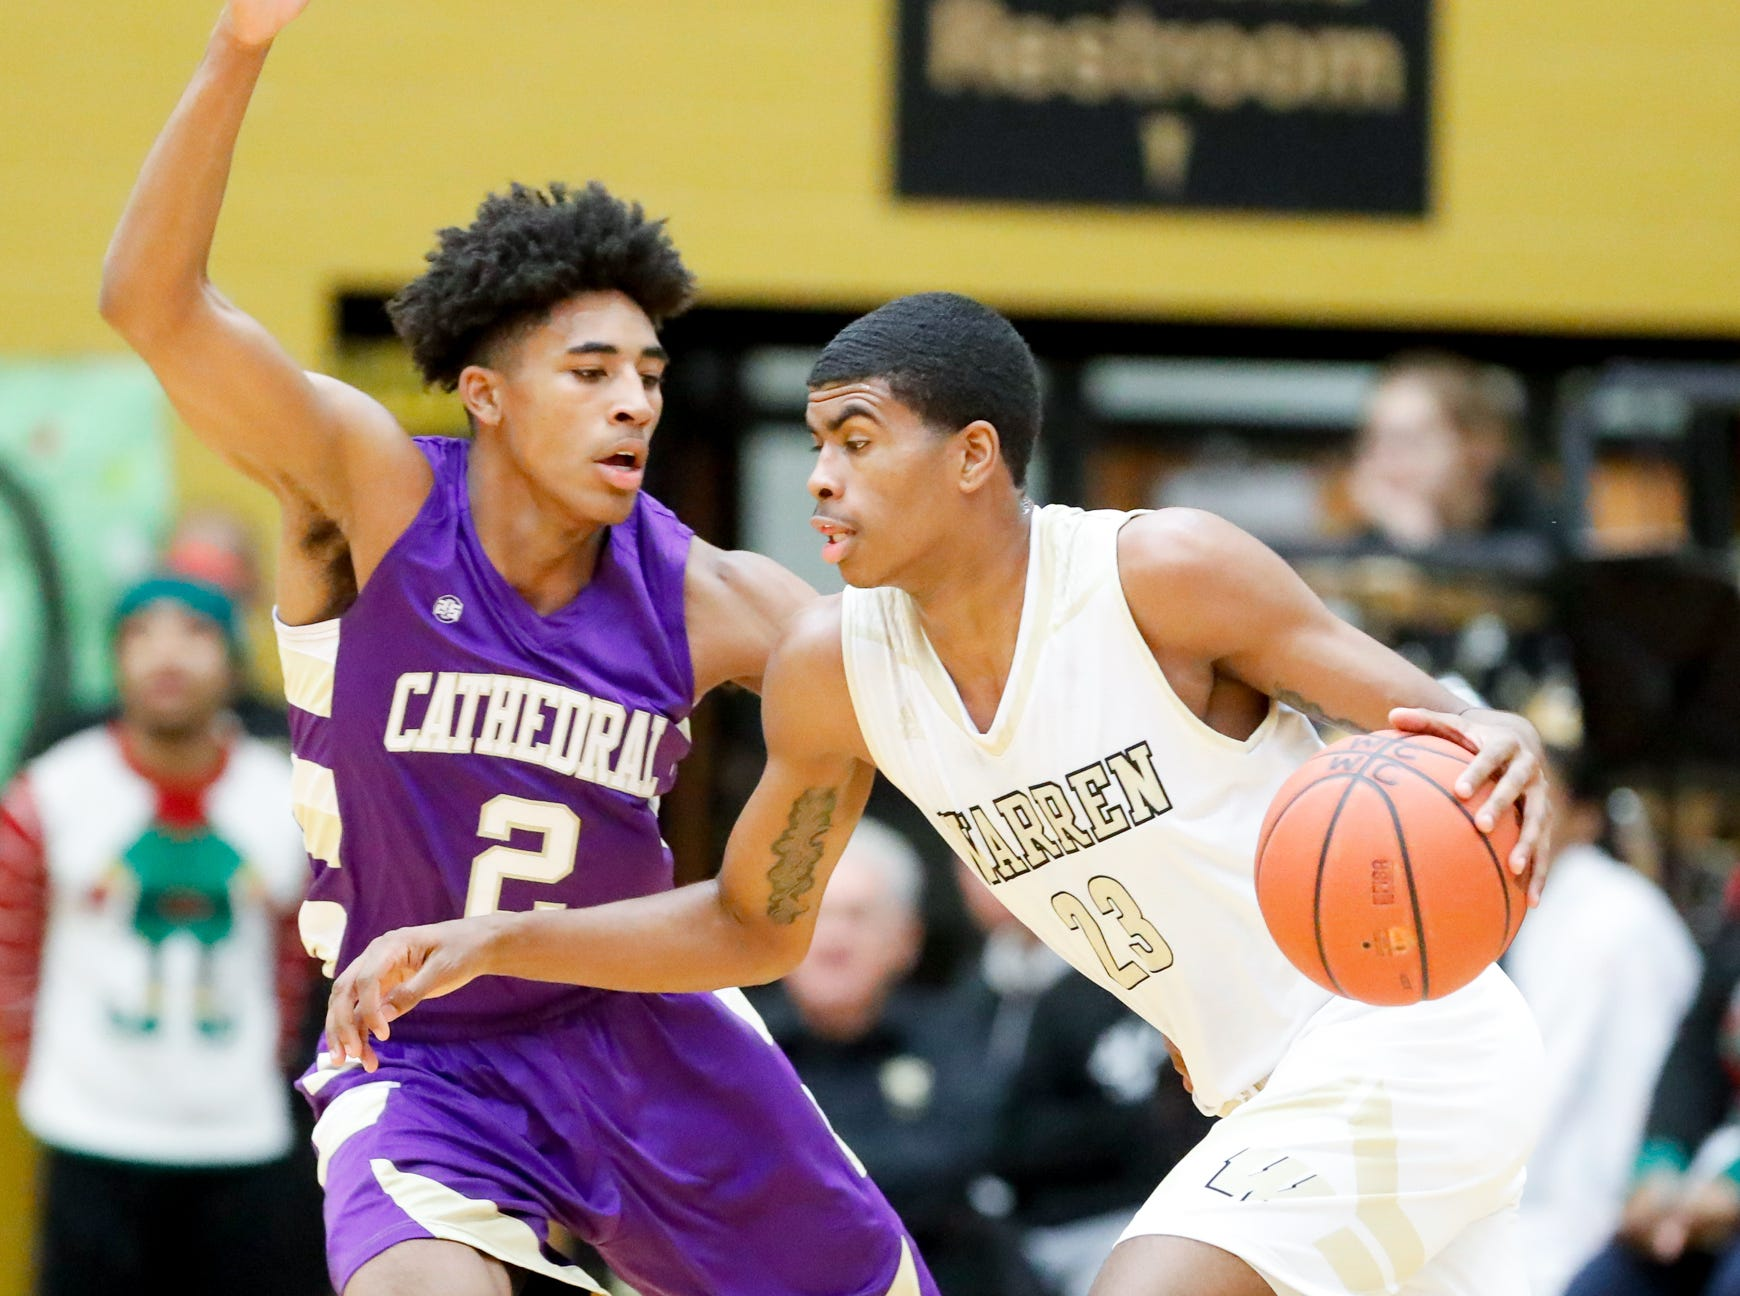 Warren Central High School's Jakobie Robinson drives past Cathedral High School's guard Armaan Franklin (2), during a varsity boys basketball game between Cathedral High School and Warren Central High School at Warren Central on Friday, Dec. 7, 2018.